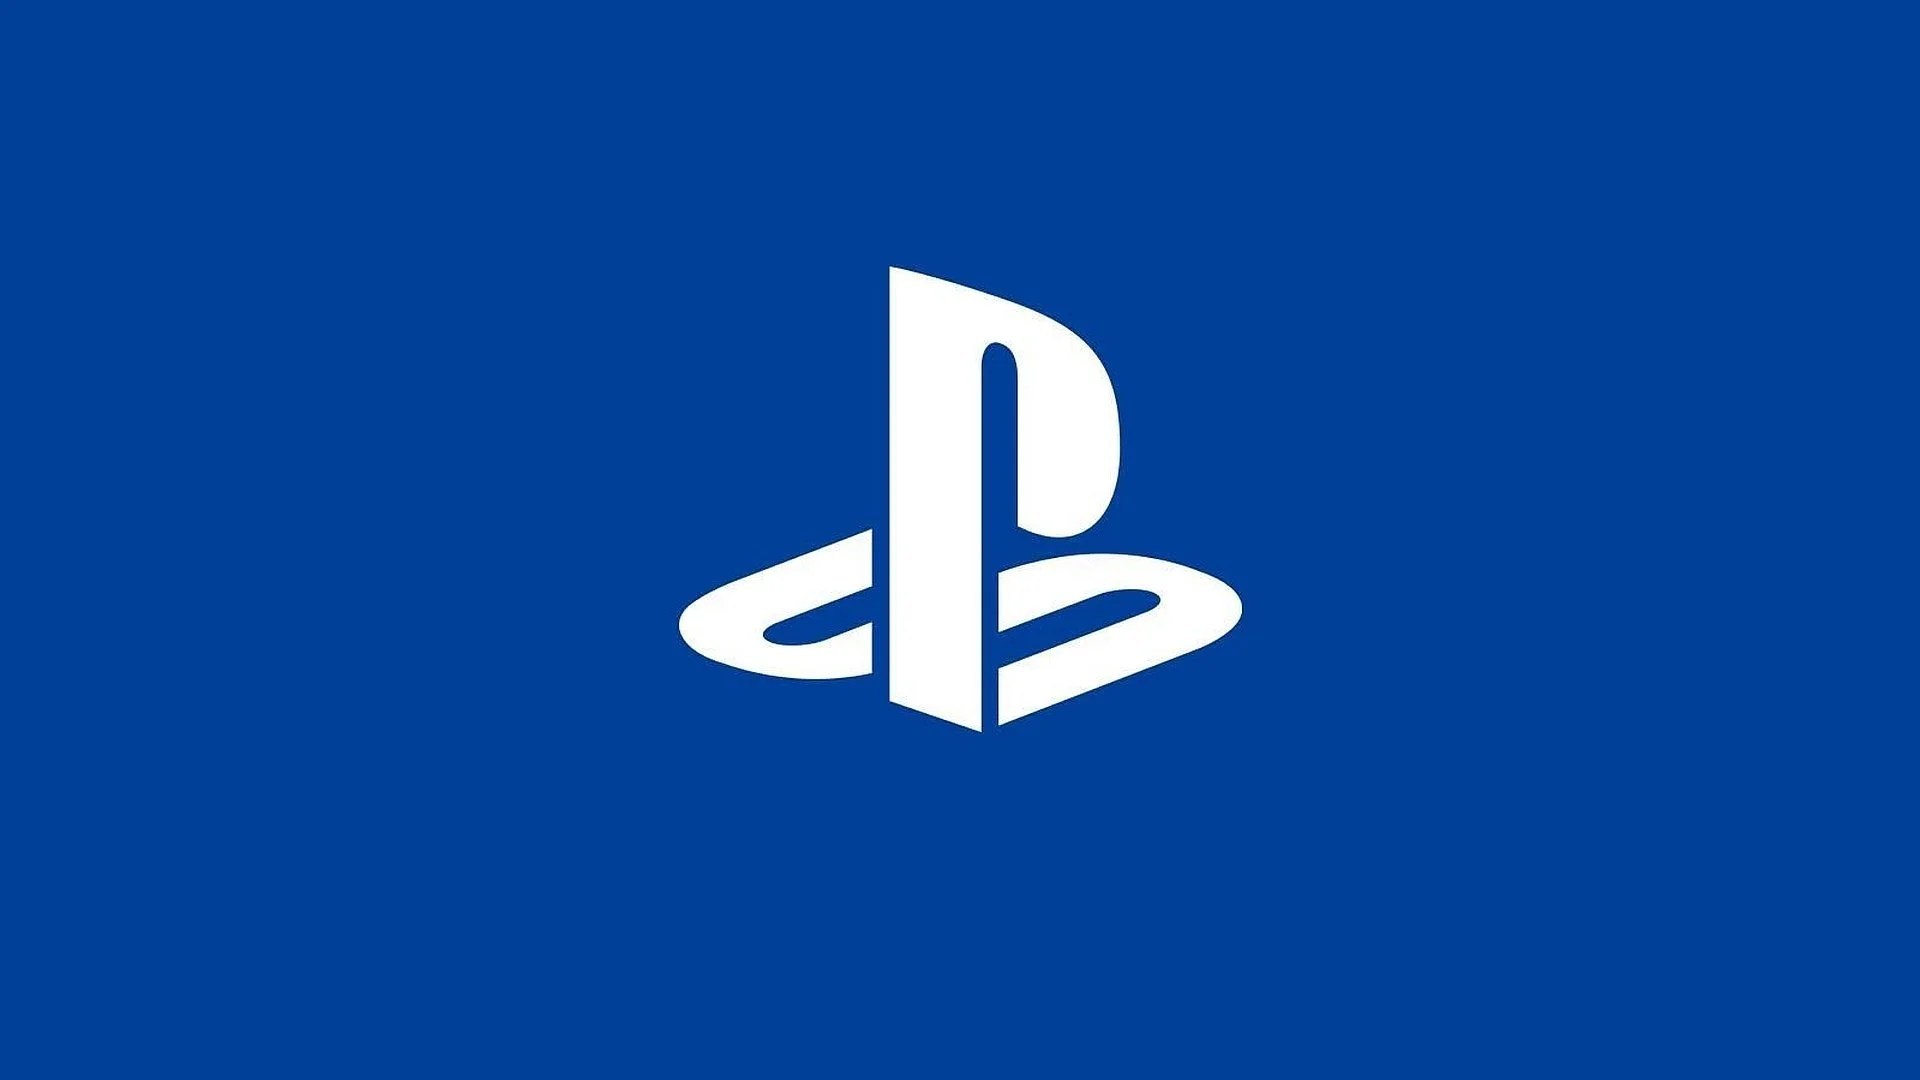 Hd Fall Wallpapers Phone Ps4 Sales Fall But It S Not All Bad News For Sony